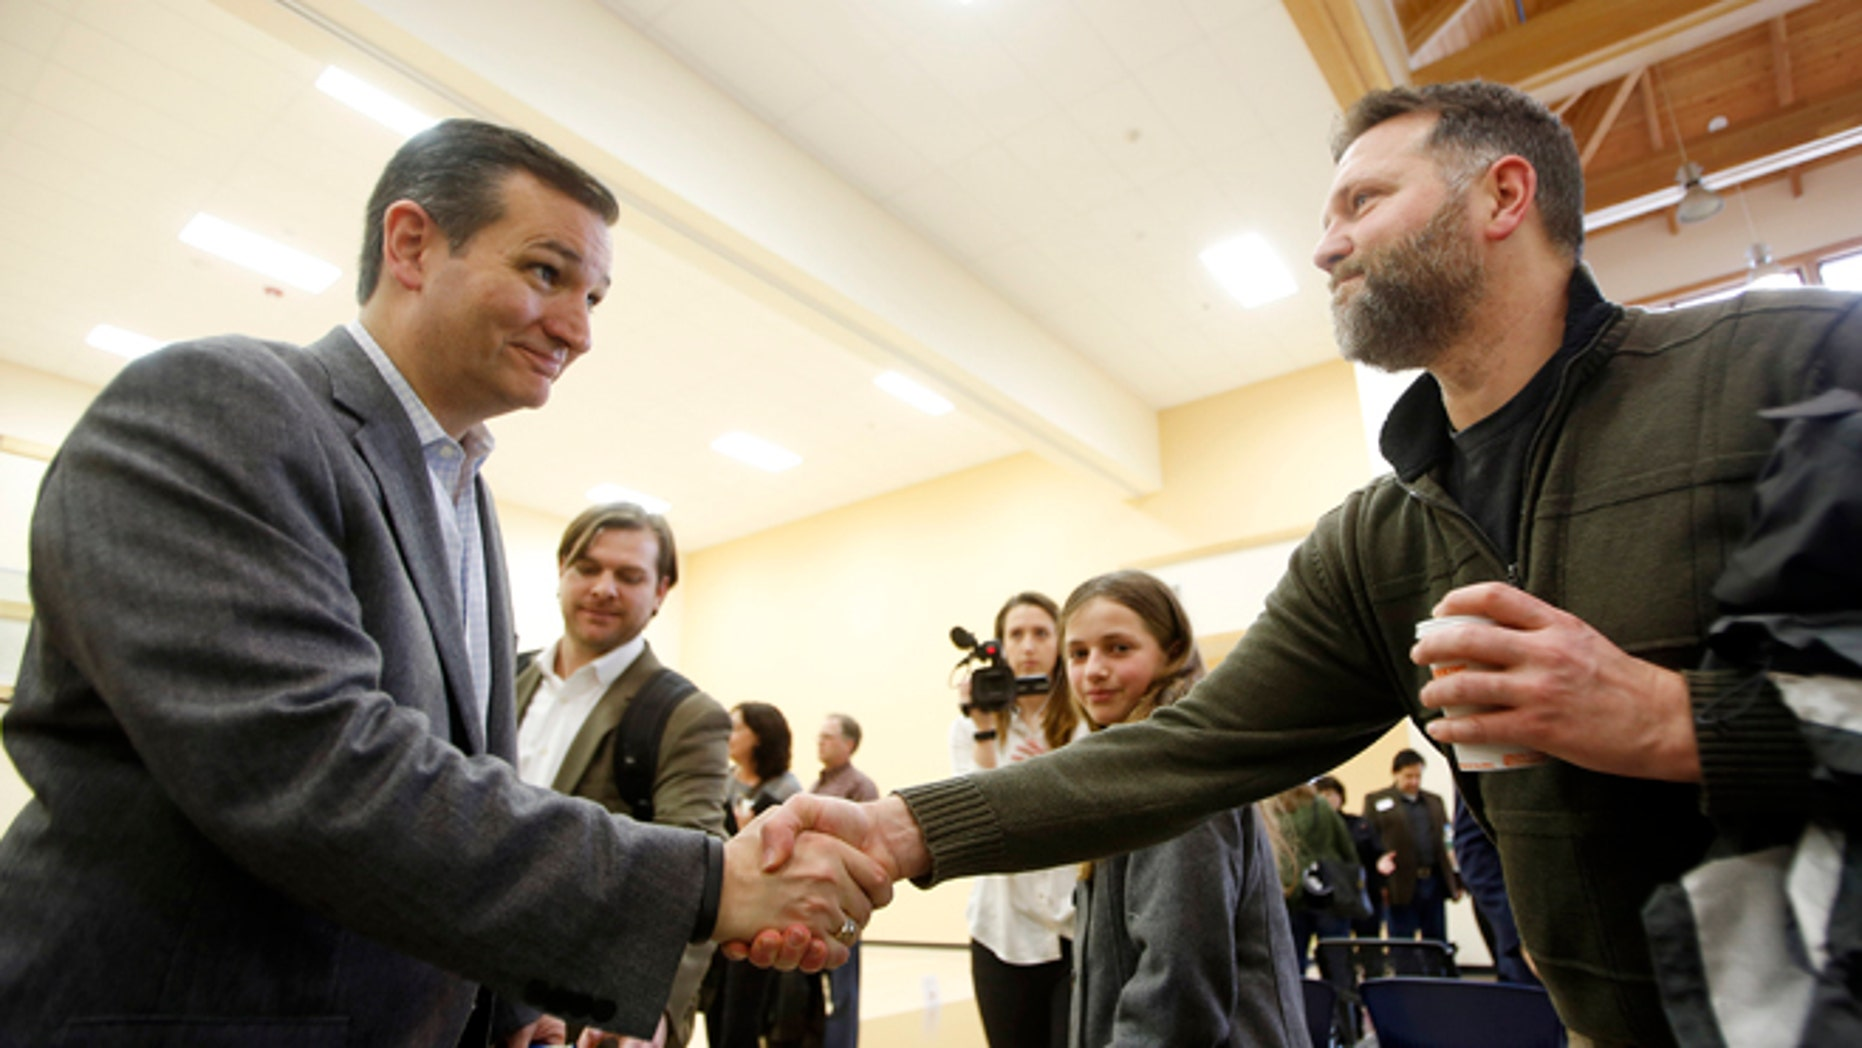 U.S. Sen. Ted Cruz, R-Texas, a tea party favorite and possible presidential candidate in 2016, left, shakes hands with Peter Smith during a visit to the Strafford County Republican Committee Chili and Chat on Sunday, March 15, 2015, in Barrington, N.H. (AP Photo/Jim Cole)